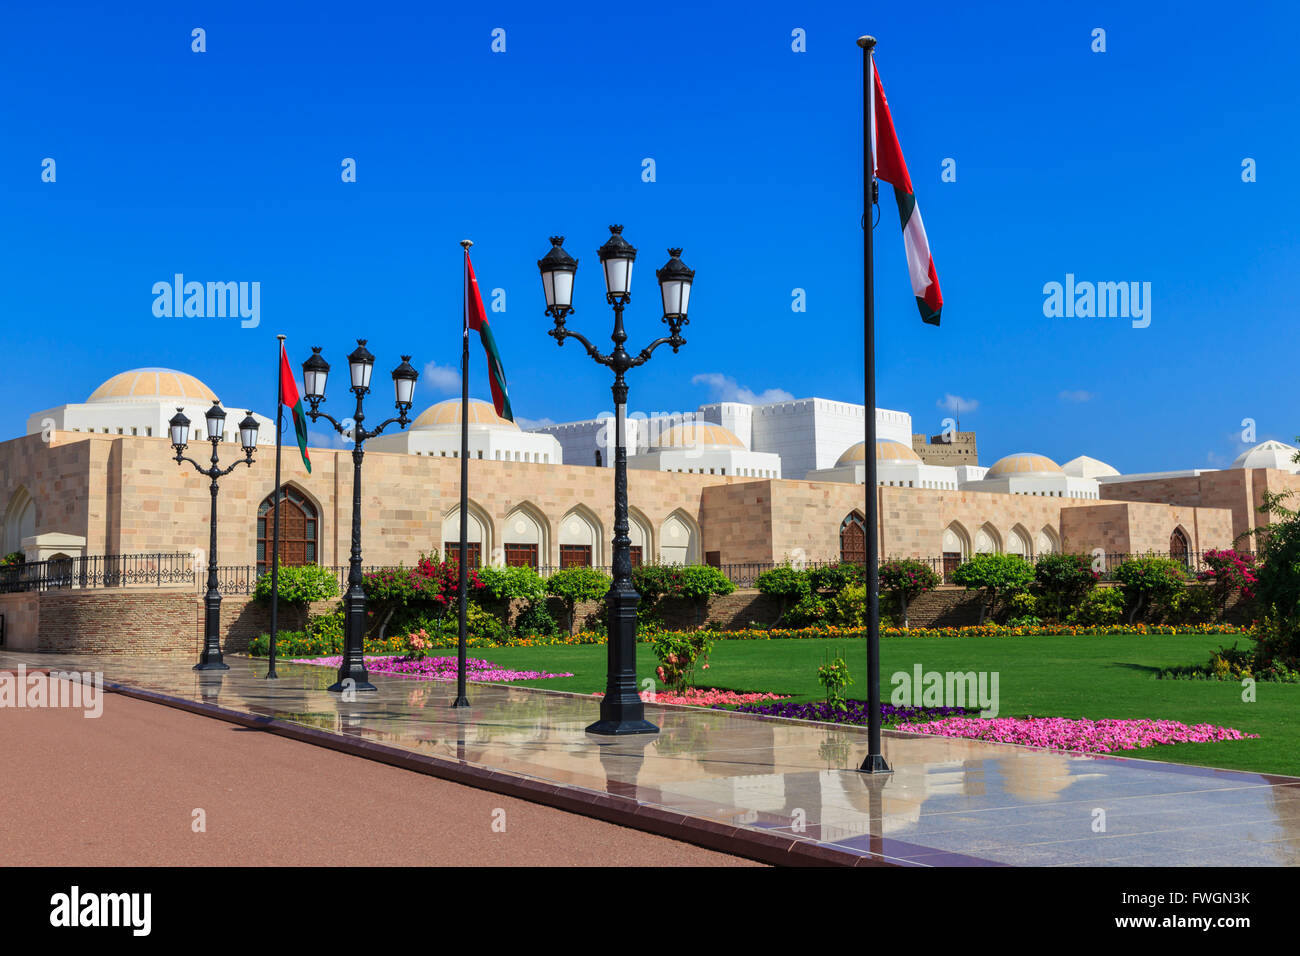 Polished pavements, National Flags, lush lawns and flowers in bloom, Sultan's Palace, Old Muscat, Oman, Middle - Stock Image